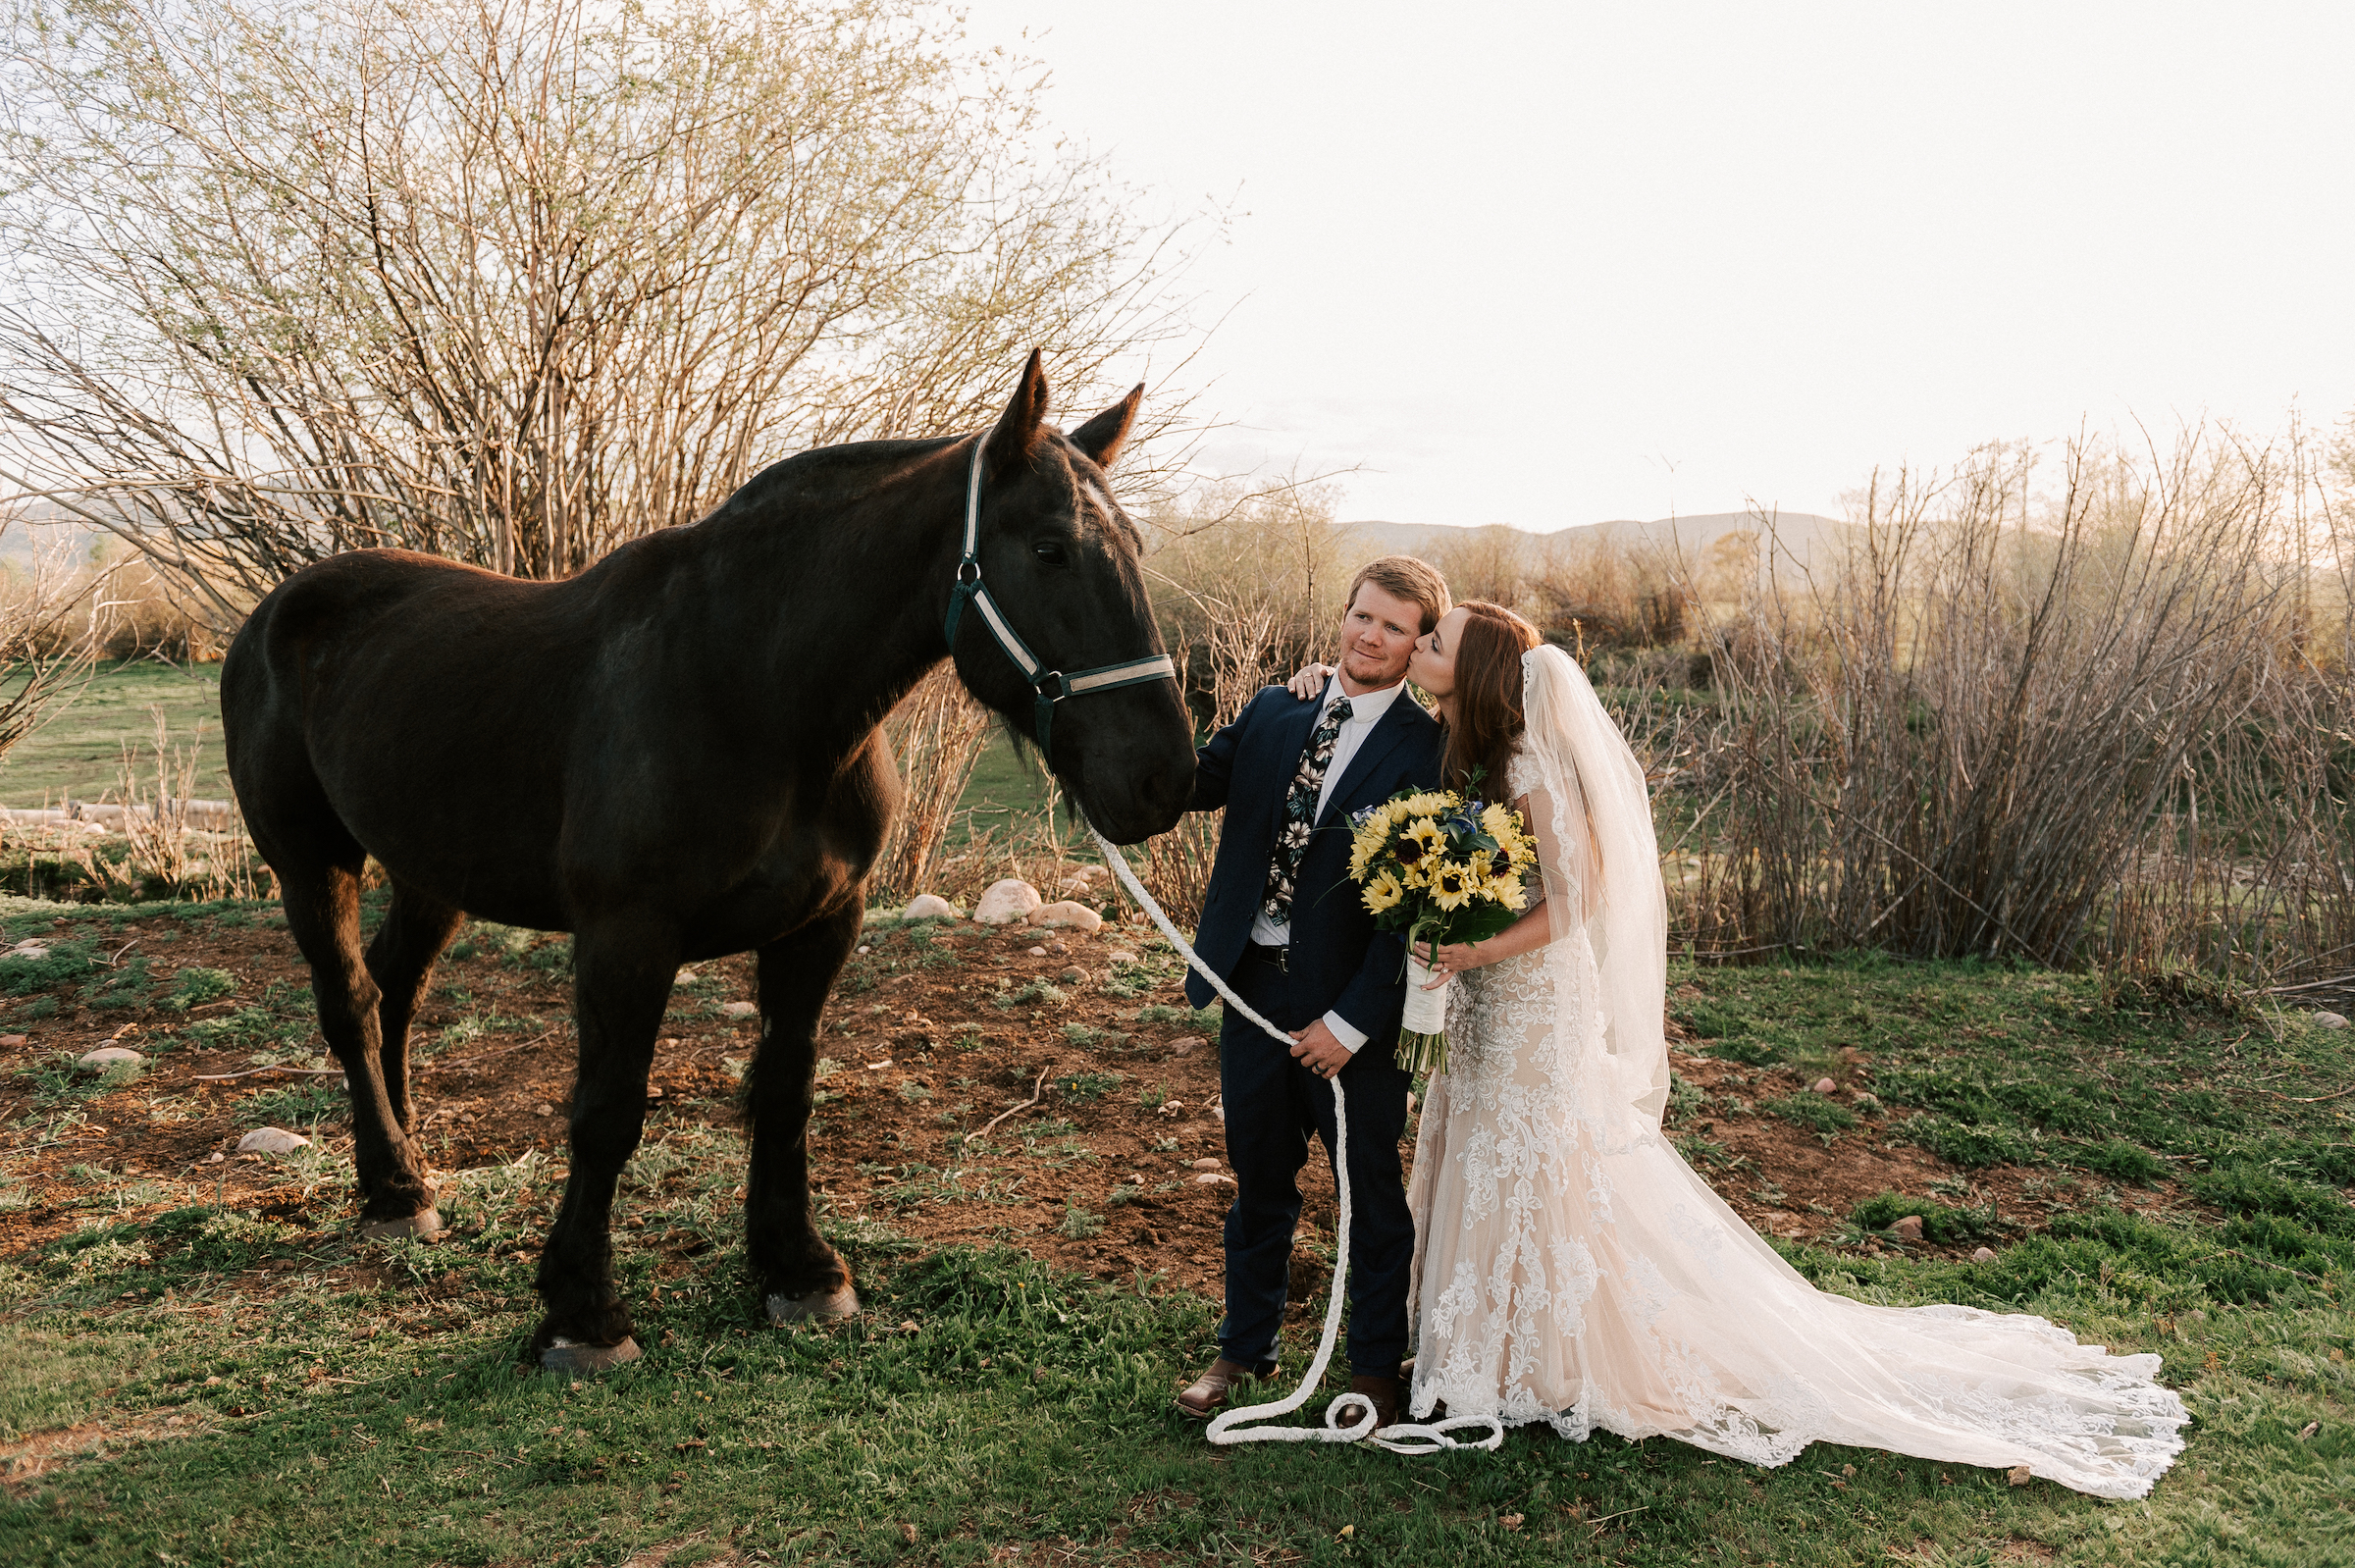 Classic Wedding Dress Cowboy Boots Horse Ranch Tew Treasures Photography 4